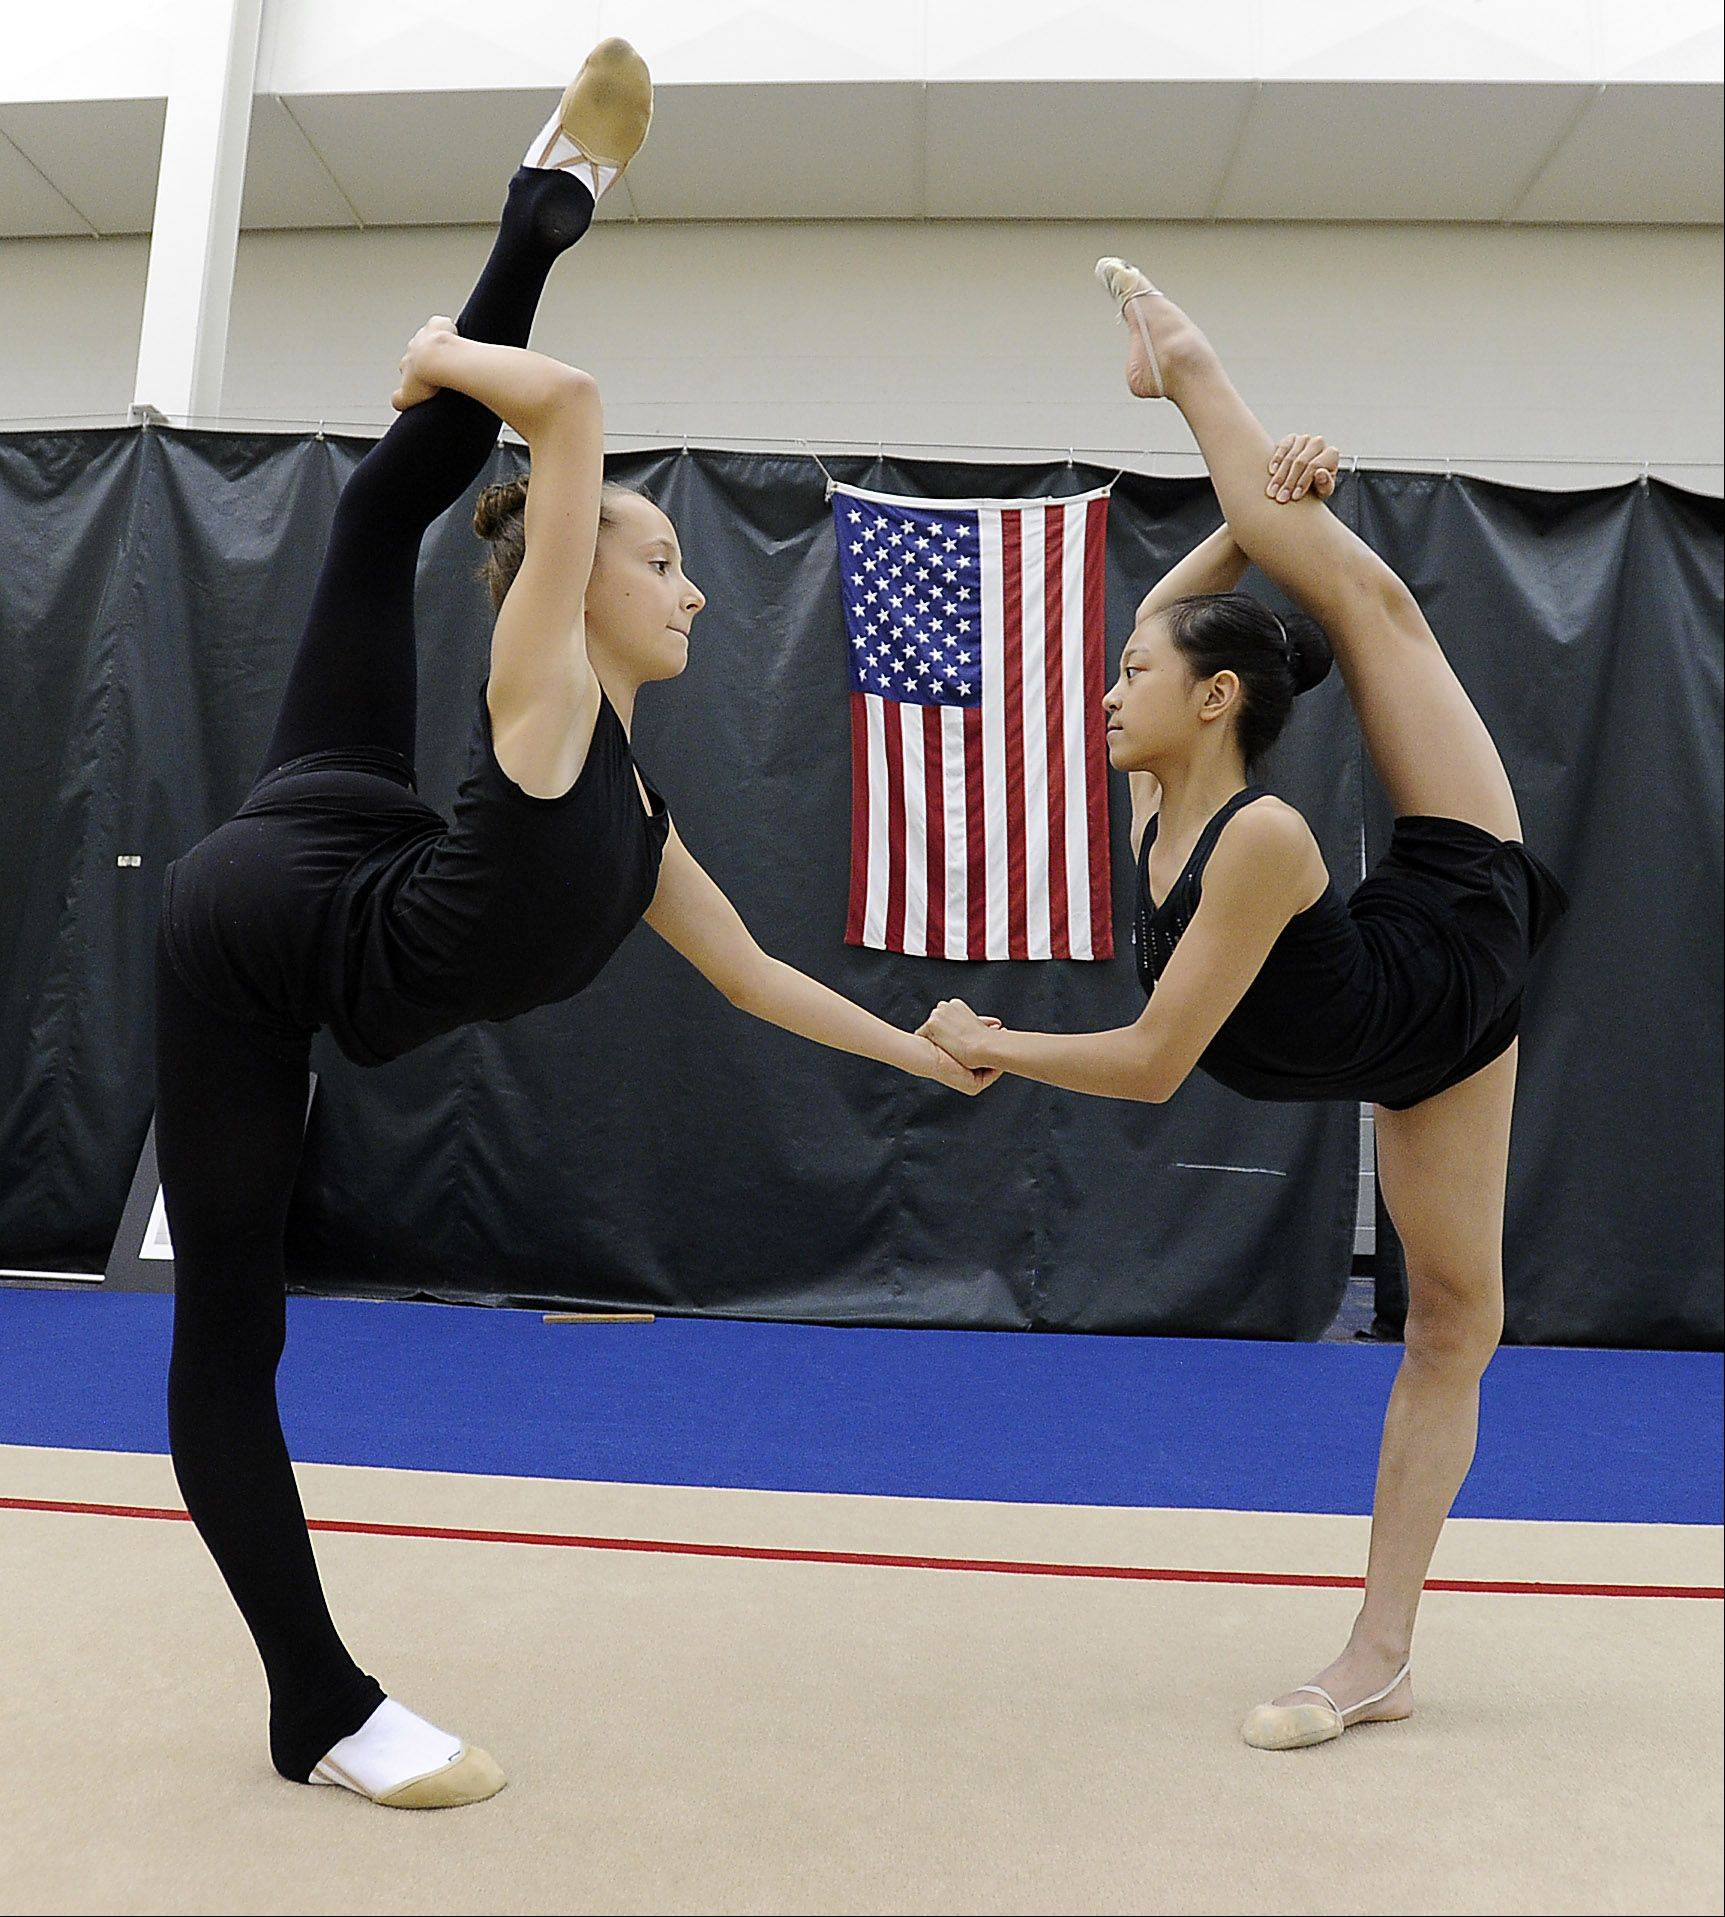 Camilla Feeley, 13, left, of Lincolnshire and Laura Zeng, 13, of Libertyville stretch during a recent training session at the North Shore Rhythmic Gymnastic Center in Deerfield. Both are members of the junior national team and Laura is the reigning junior national champion.